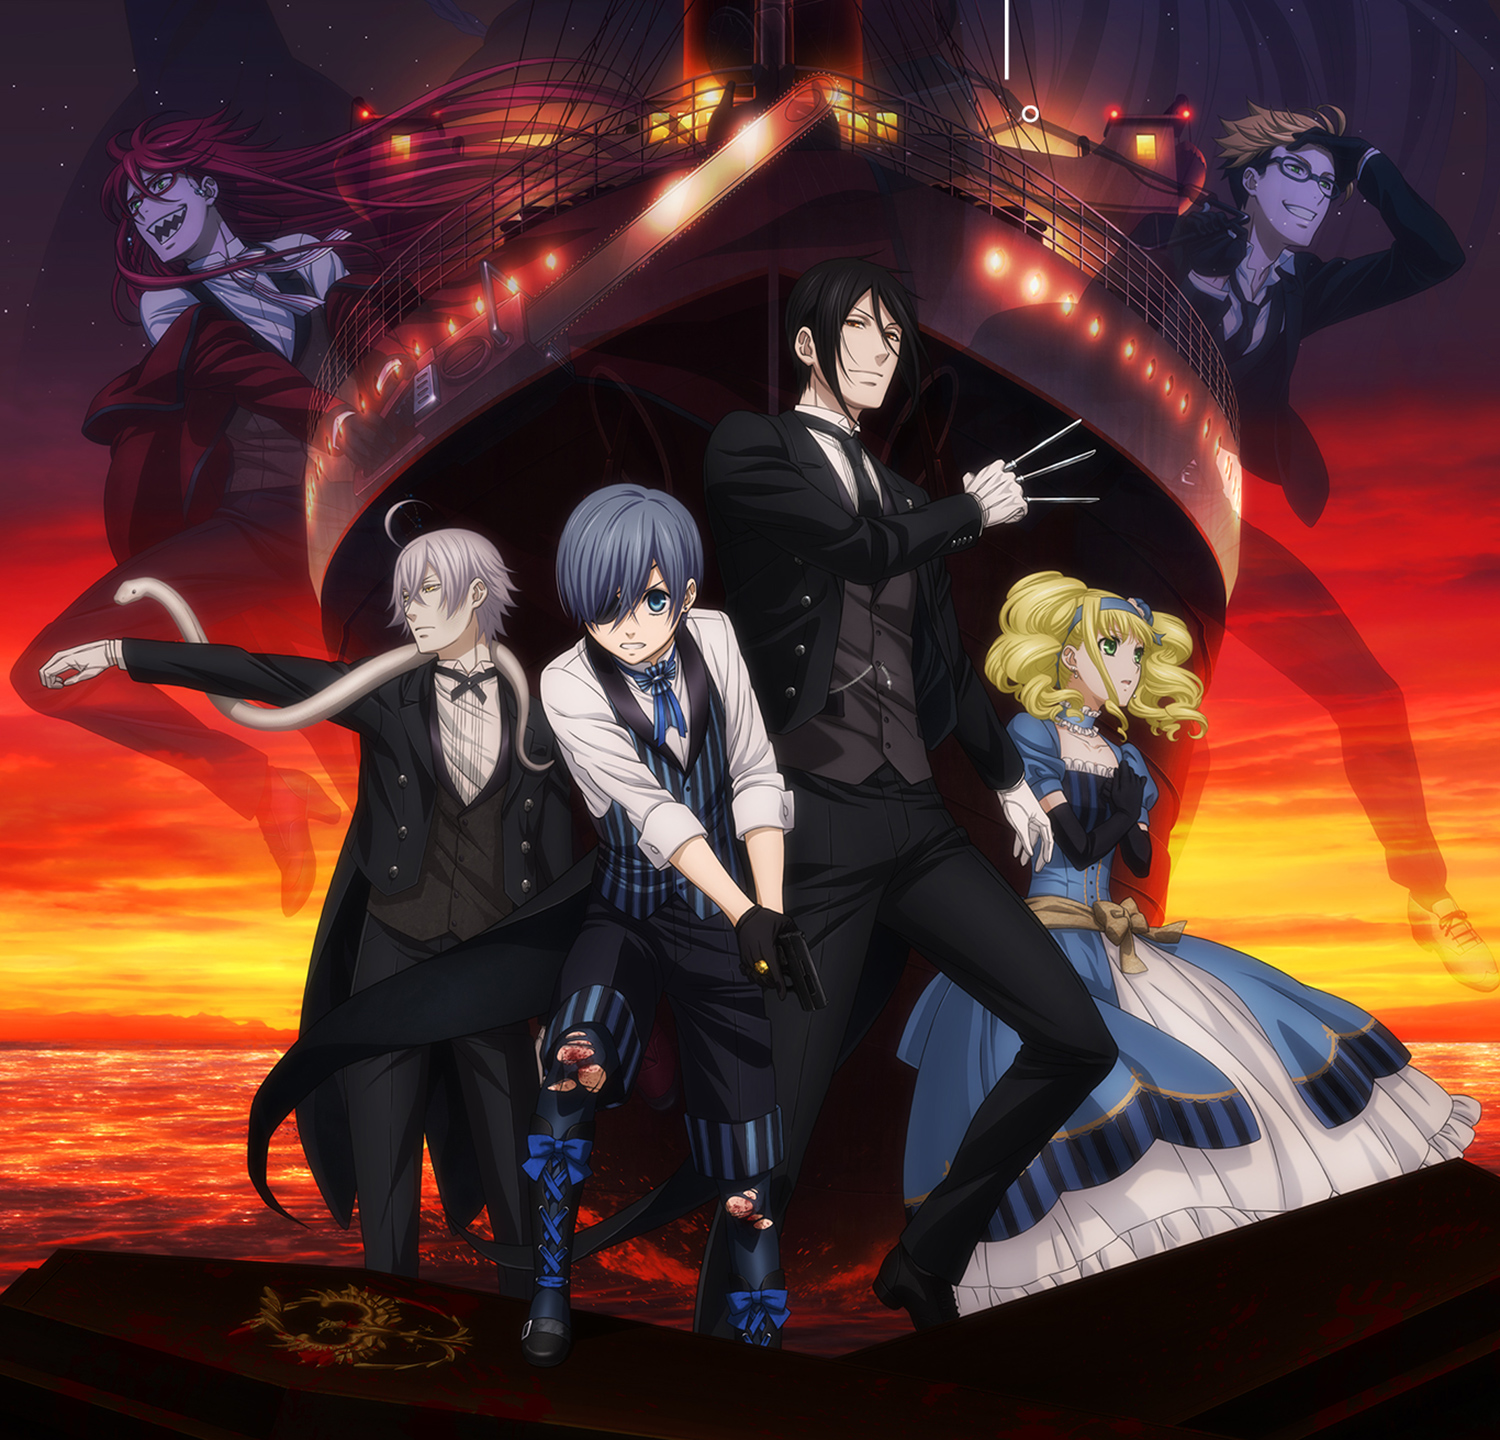 Anime Movies 2017 - Black Butler: Book of the Atlantic